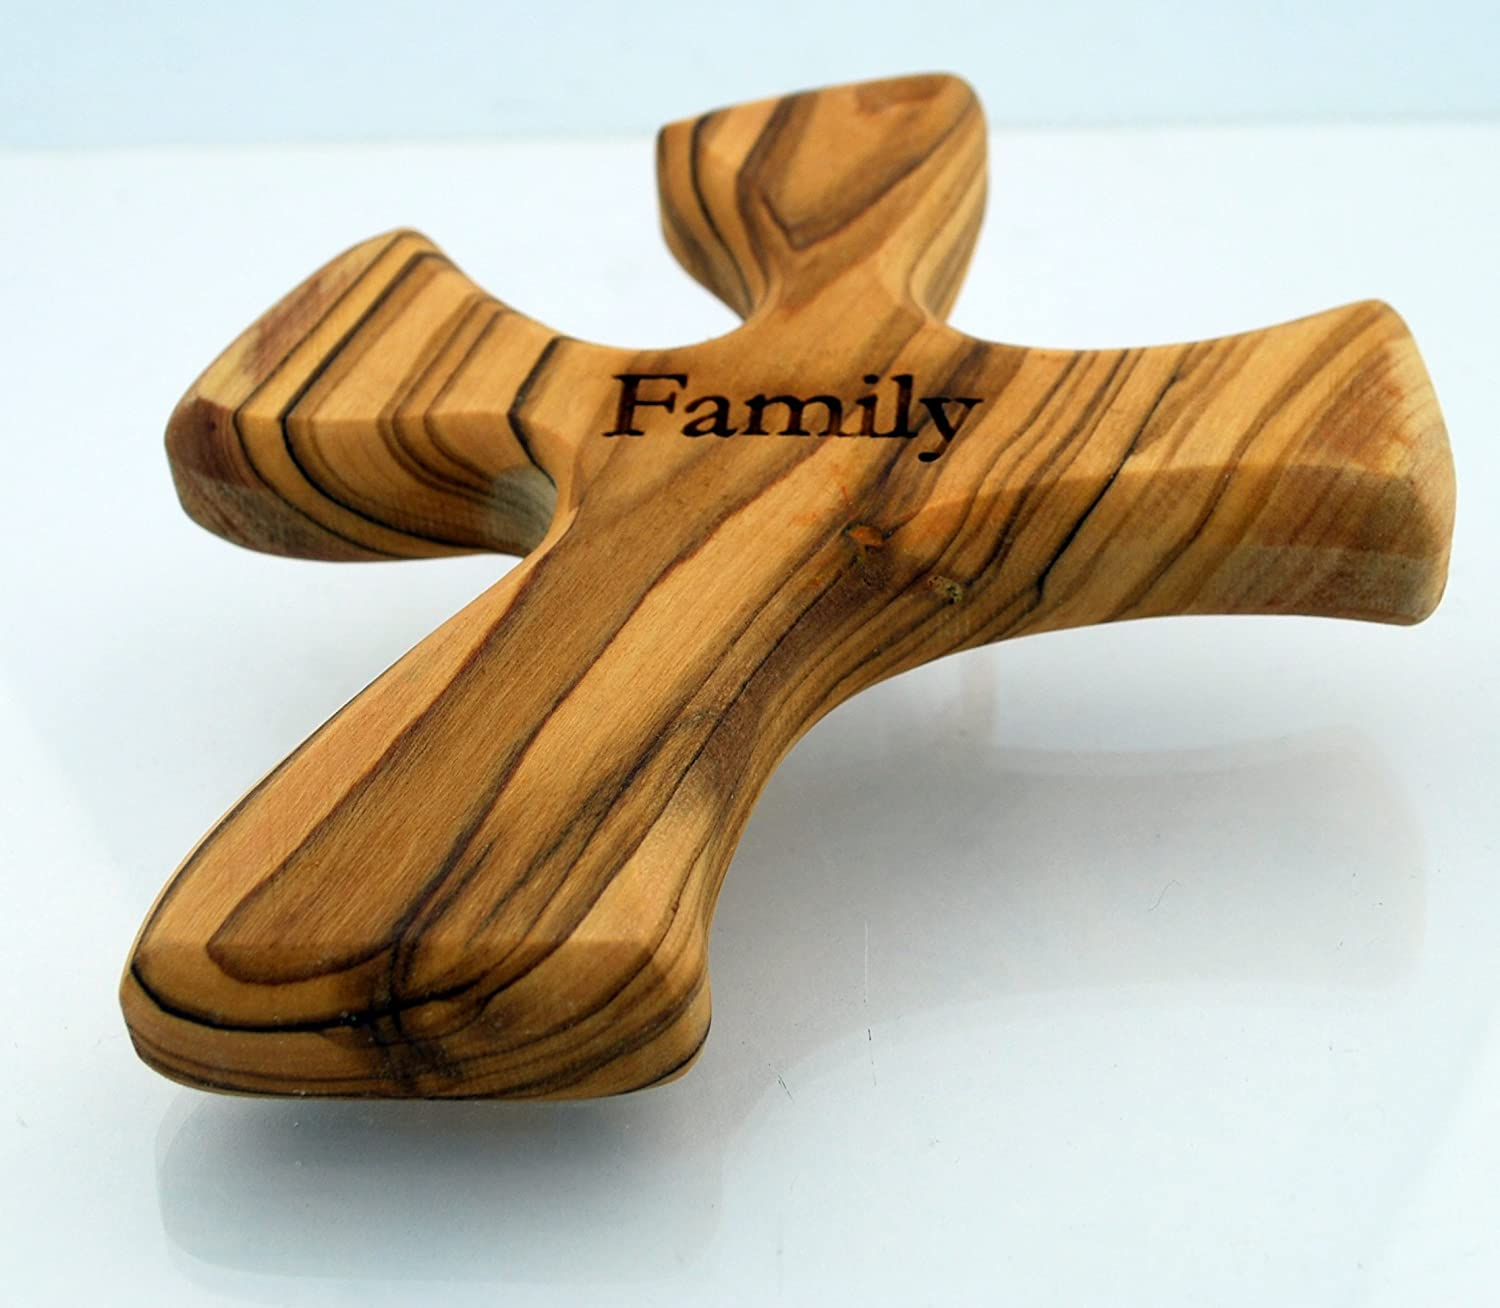 Hand Held Cross Made to Perfectly Fit in Your Hand Olive Wood Prayer Cross Family